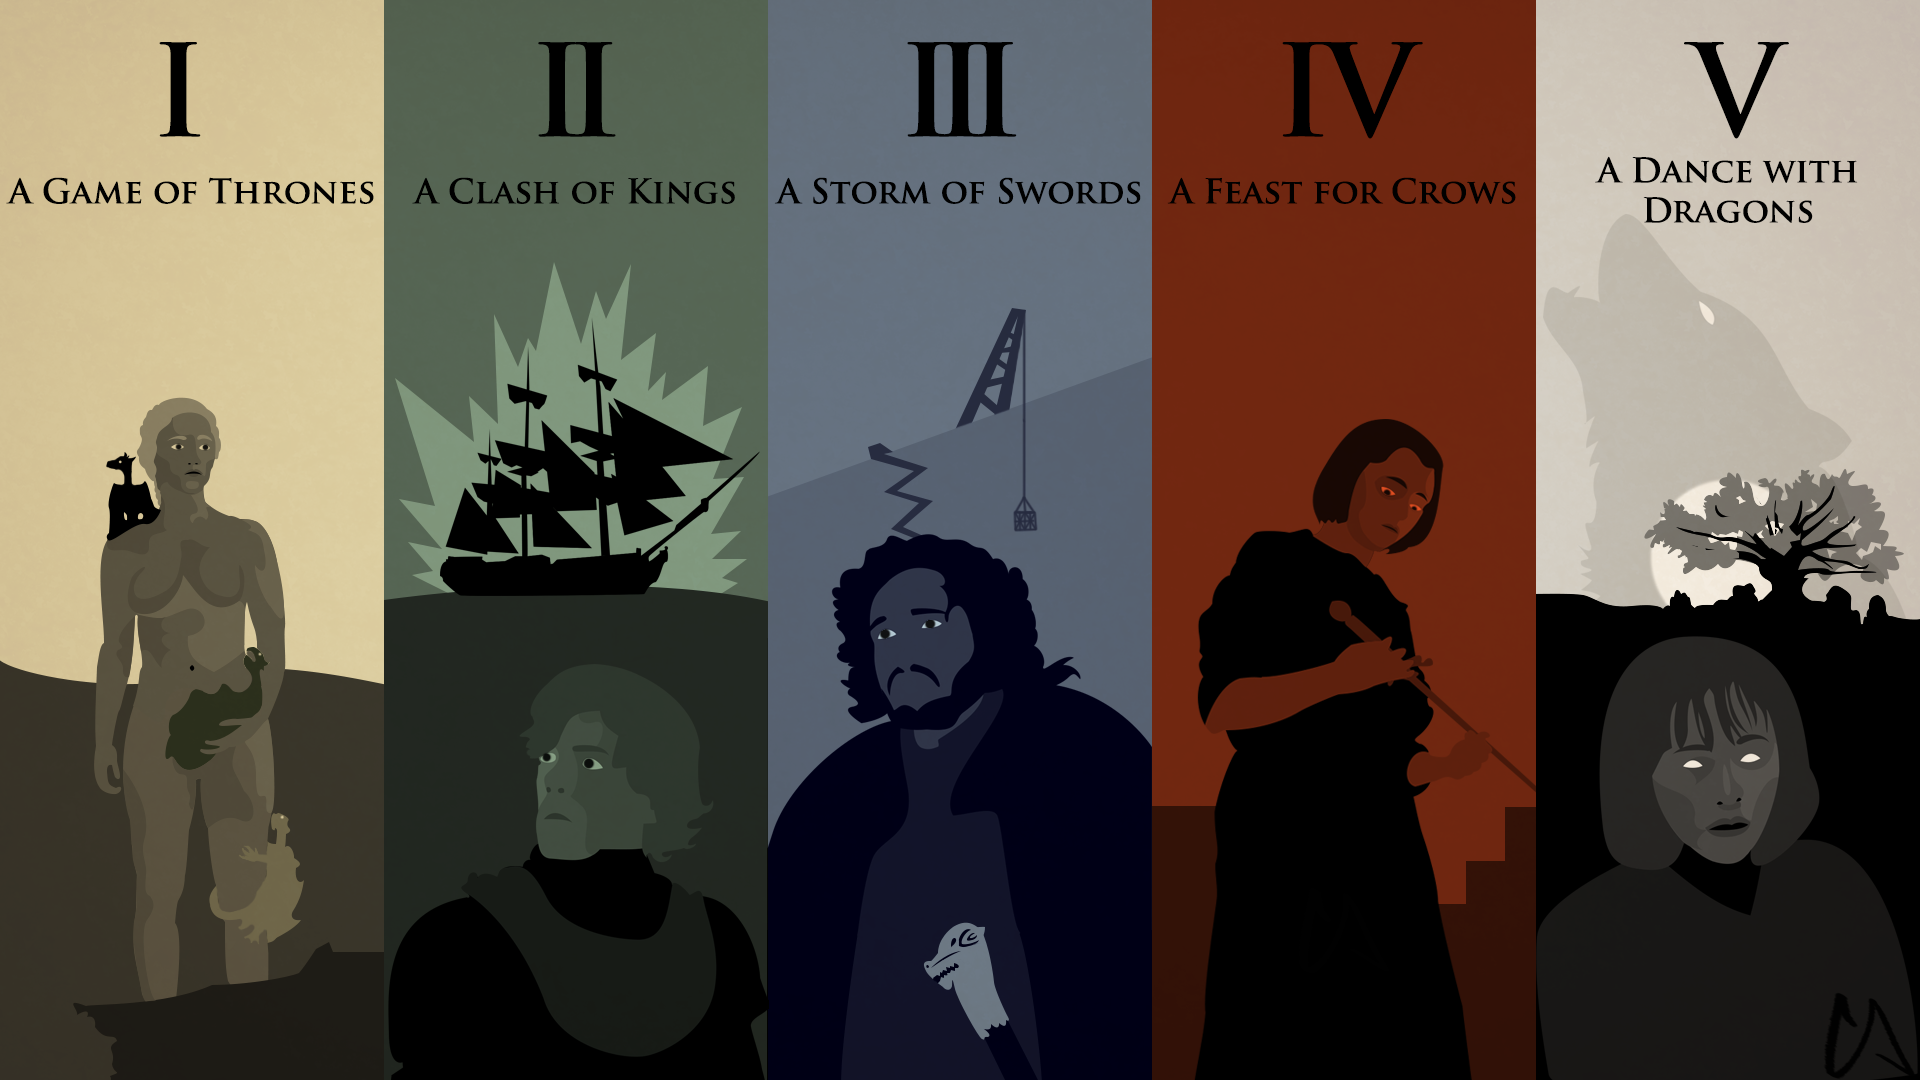 A Song Of Ice And Fire Wallpaper By Conkoon On Deviantart